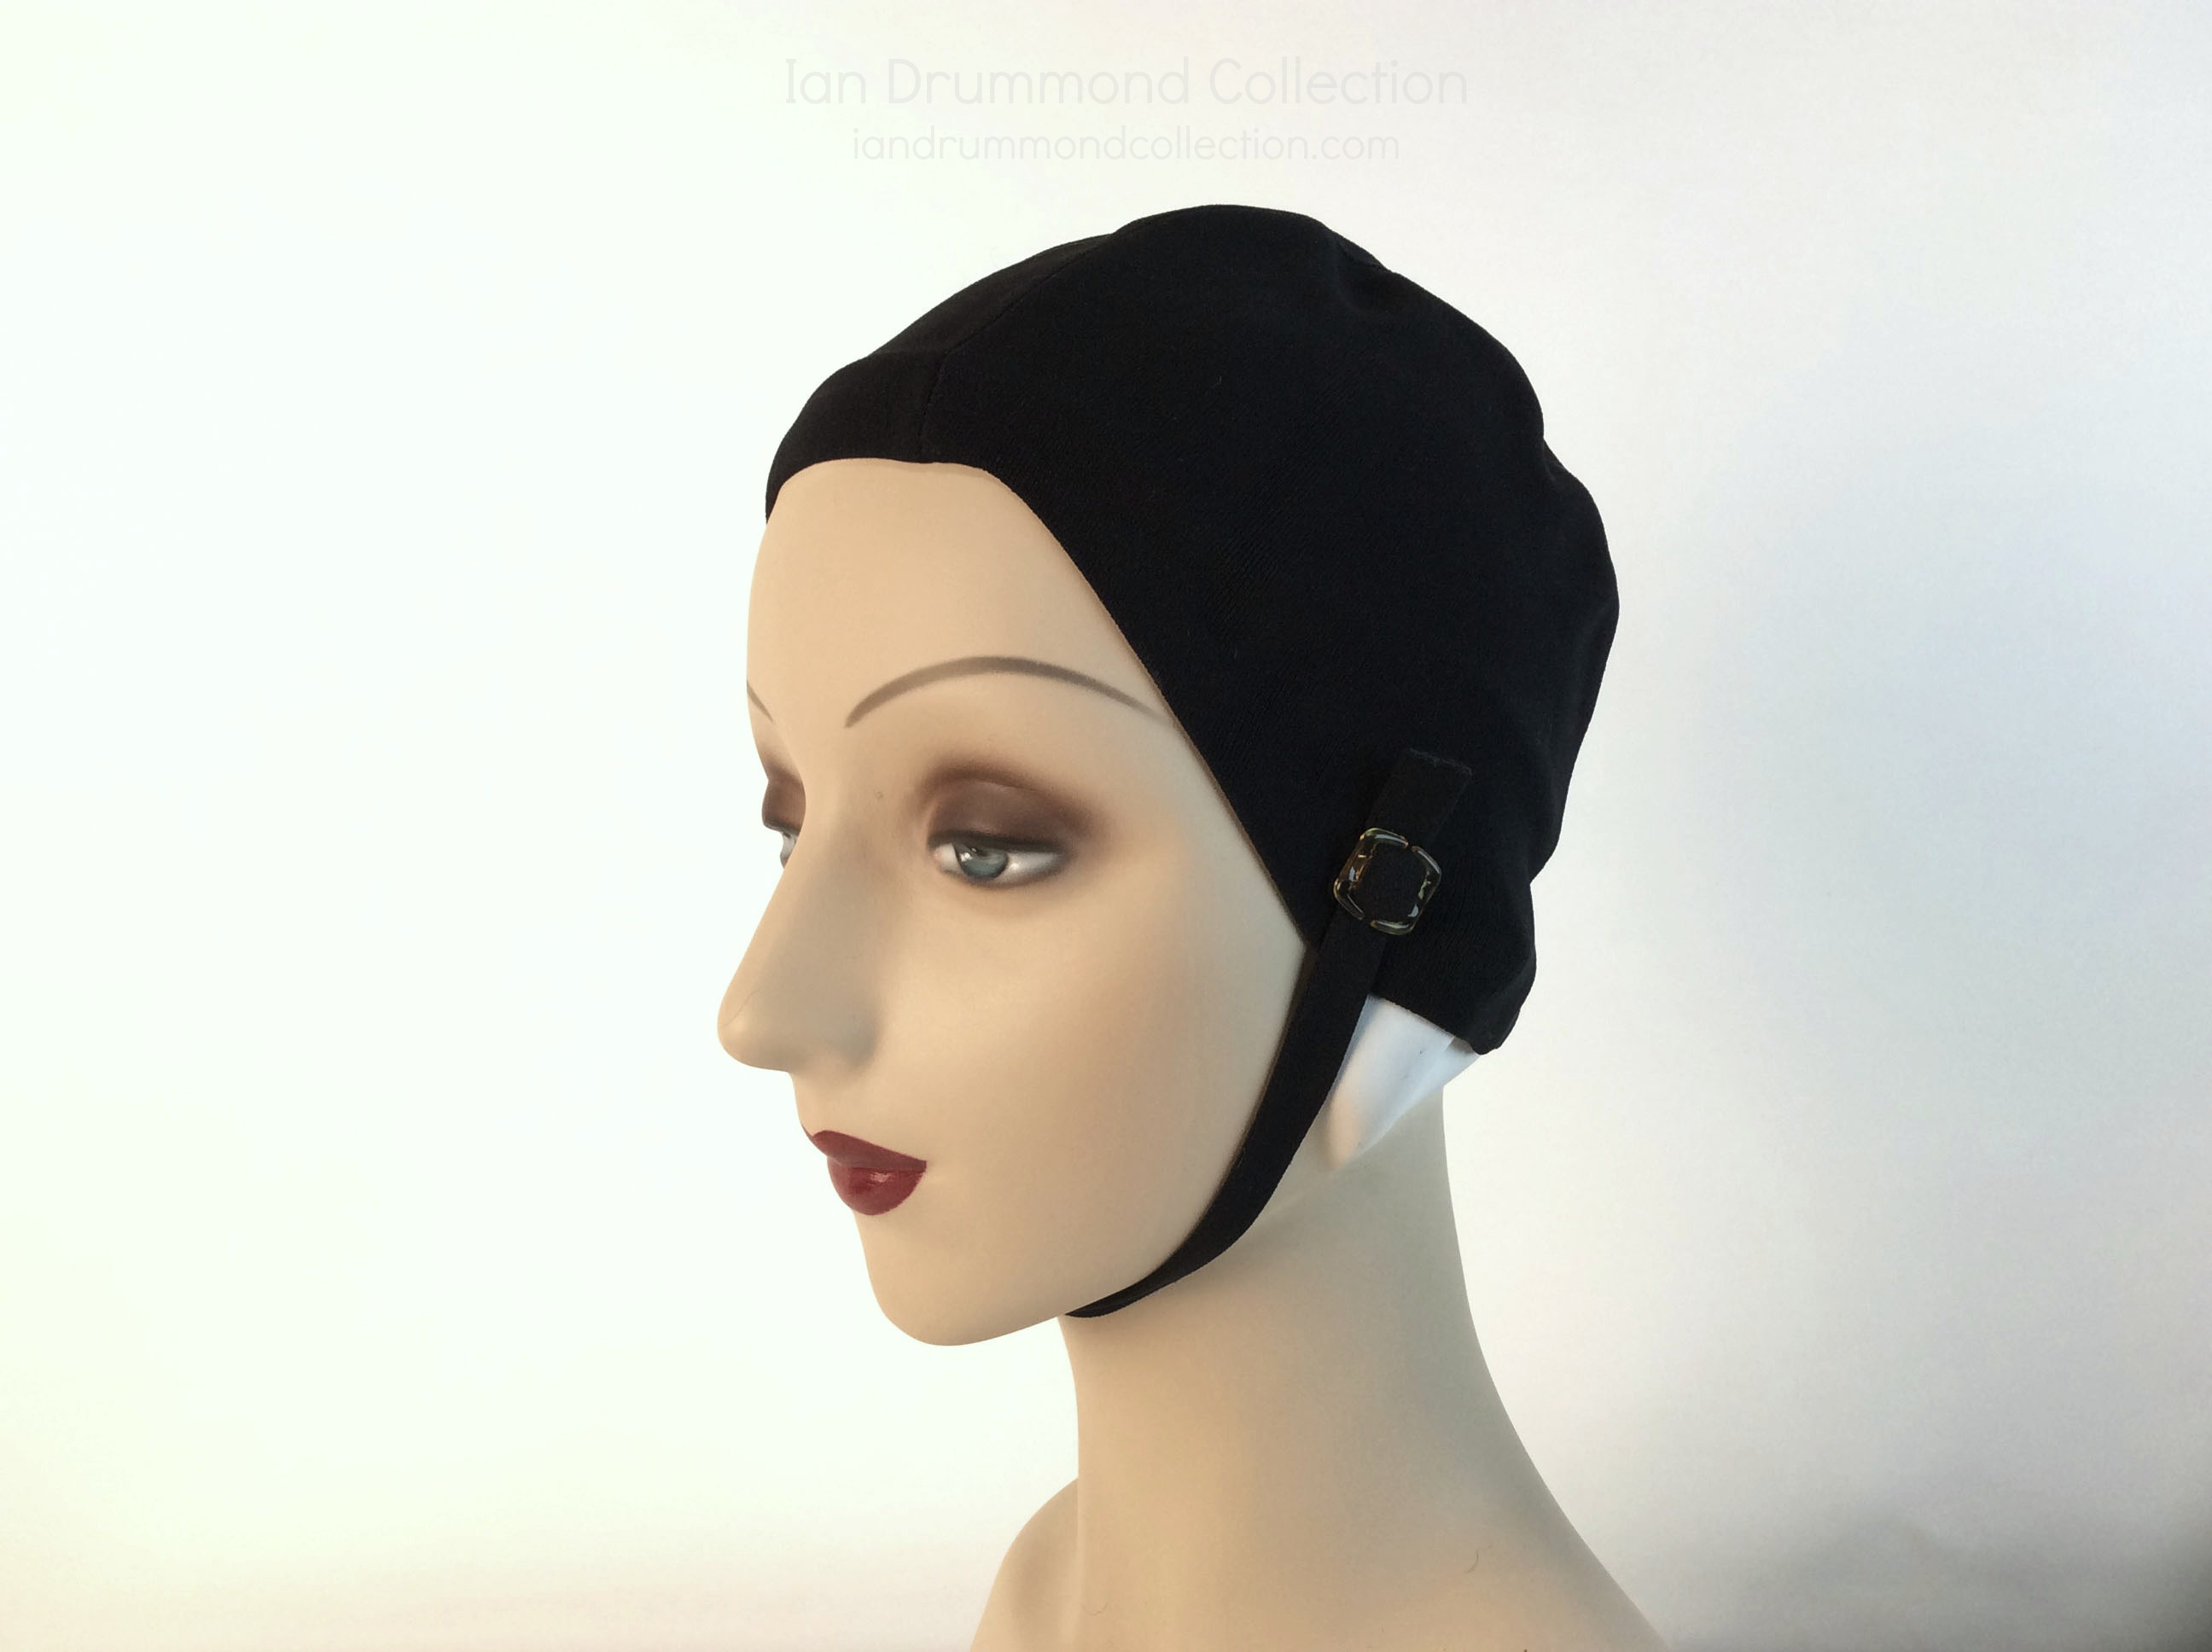 IDC Movie Wardrobe Rental Swim Cap 12 Black Fitted Nylon Simple Cap with Chin Strap